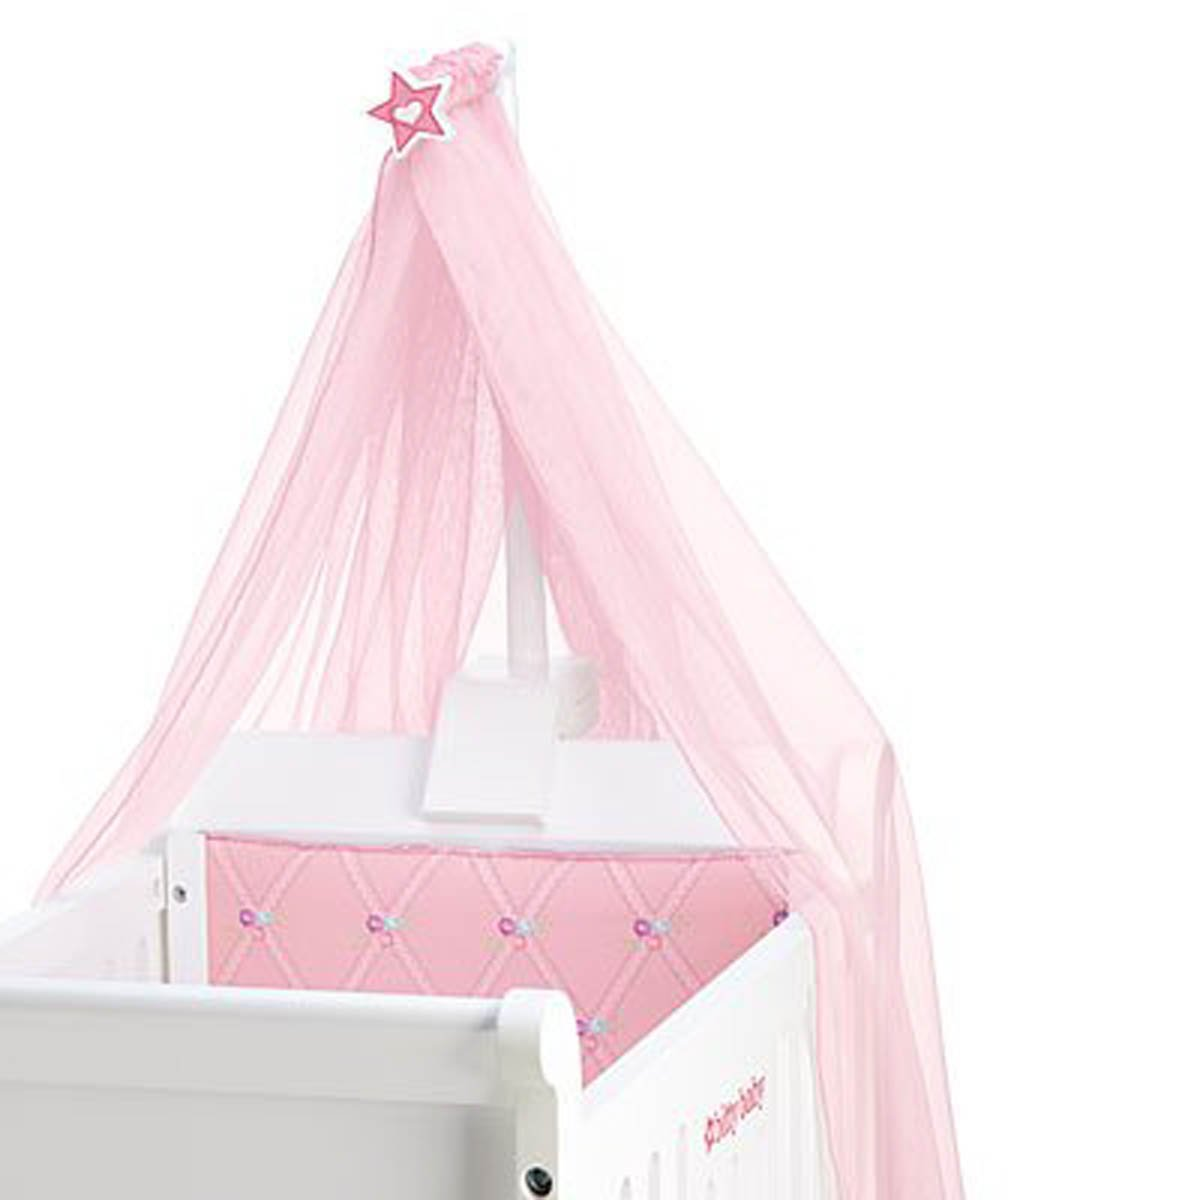 Charming and Cute Bitty Baby Changing Table: Bitty Baby Changing Table | Ikea Sundvik Changing Table | Nappy Organiser For Change Table